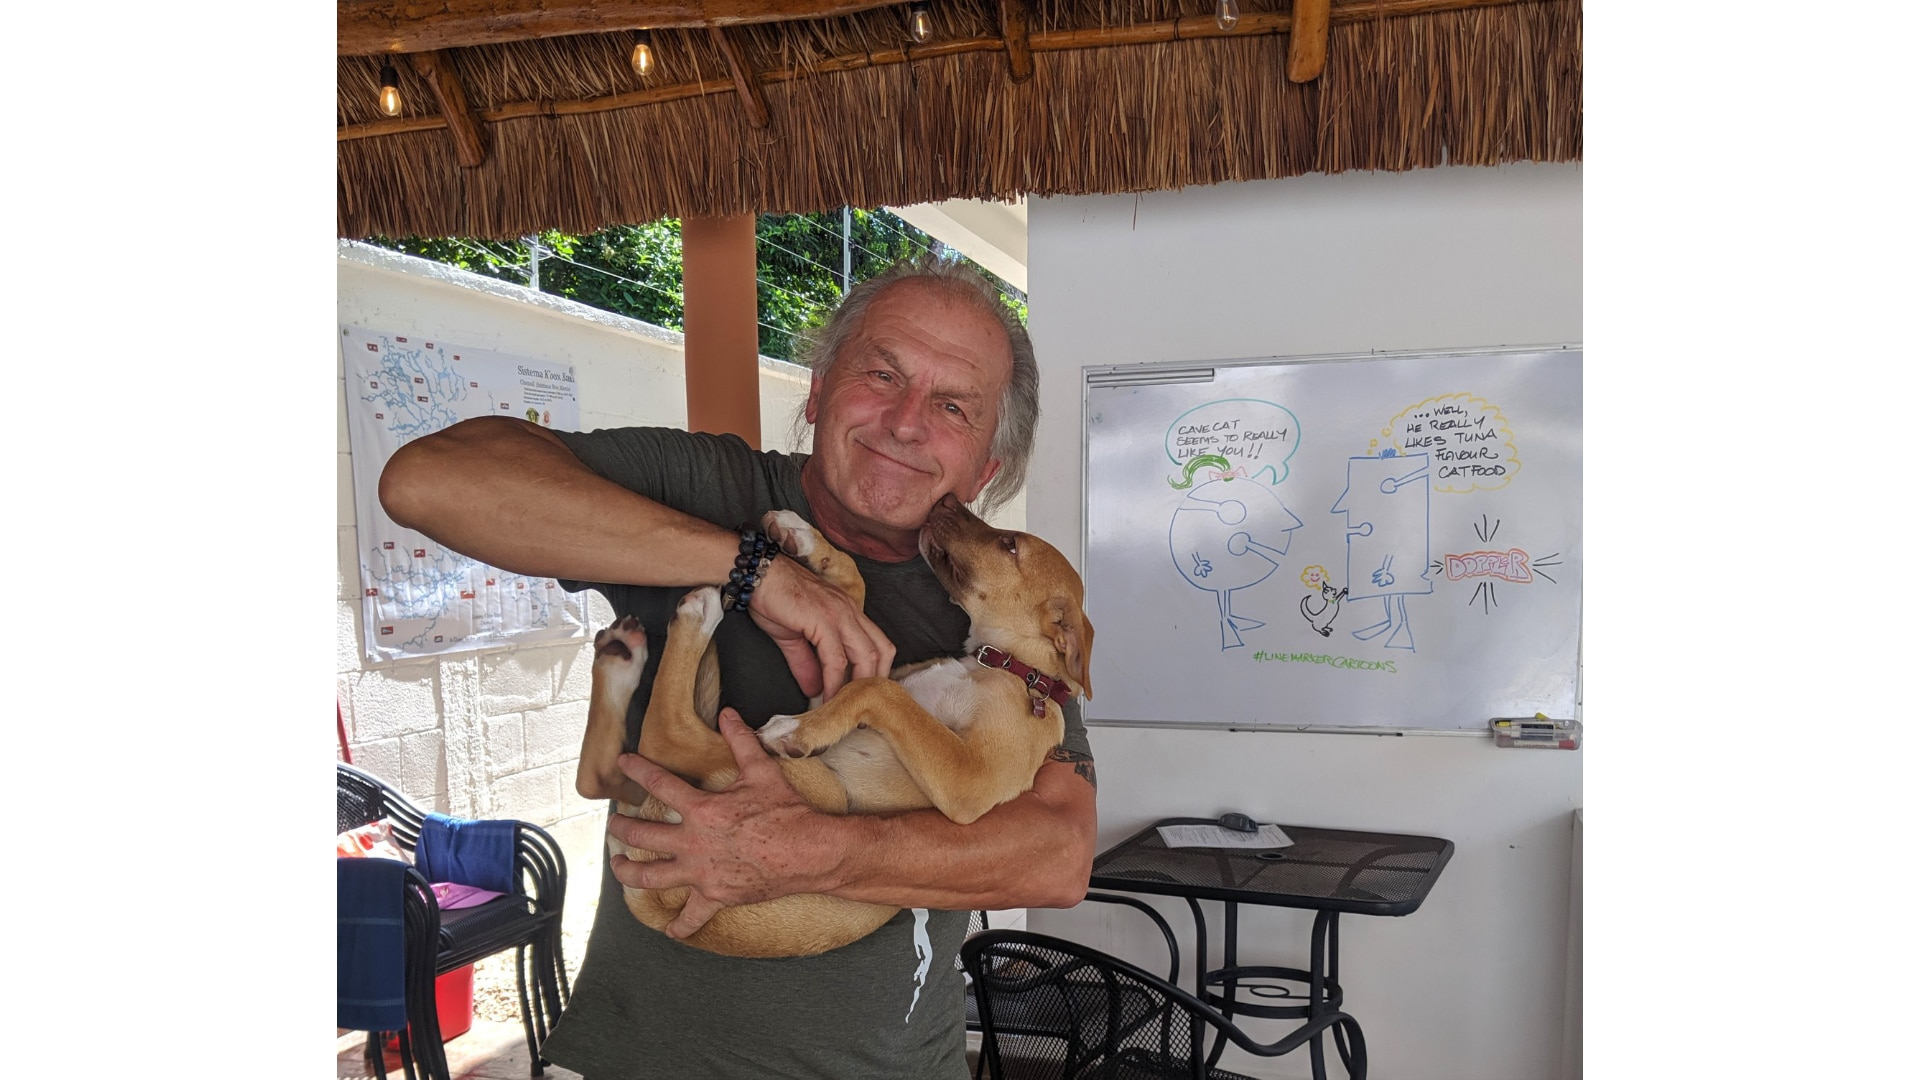 Steve Lewis with dog